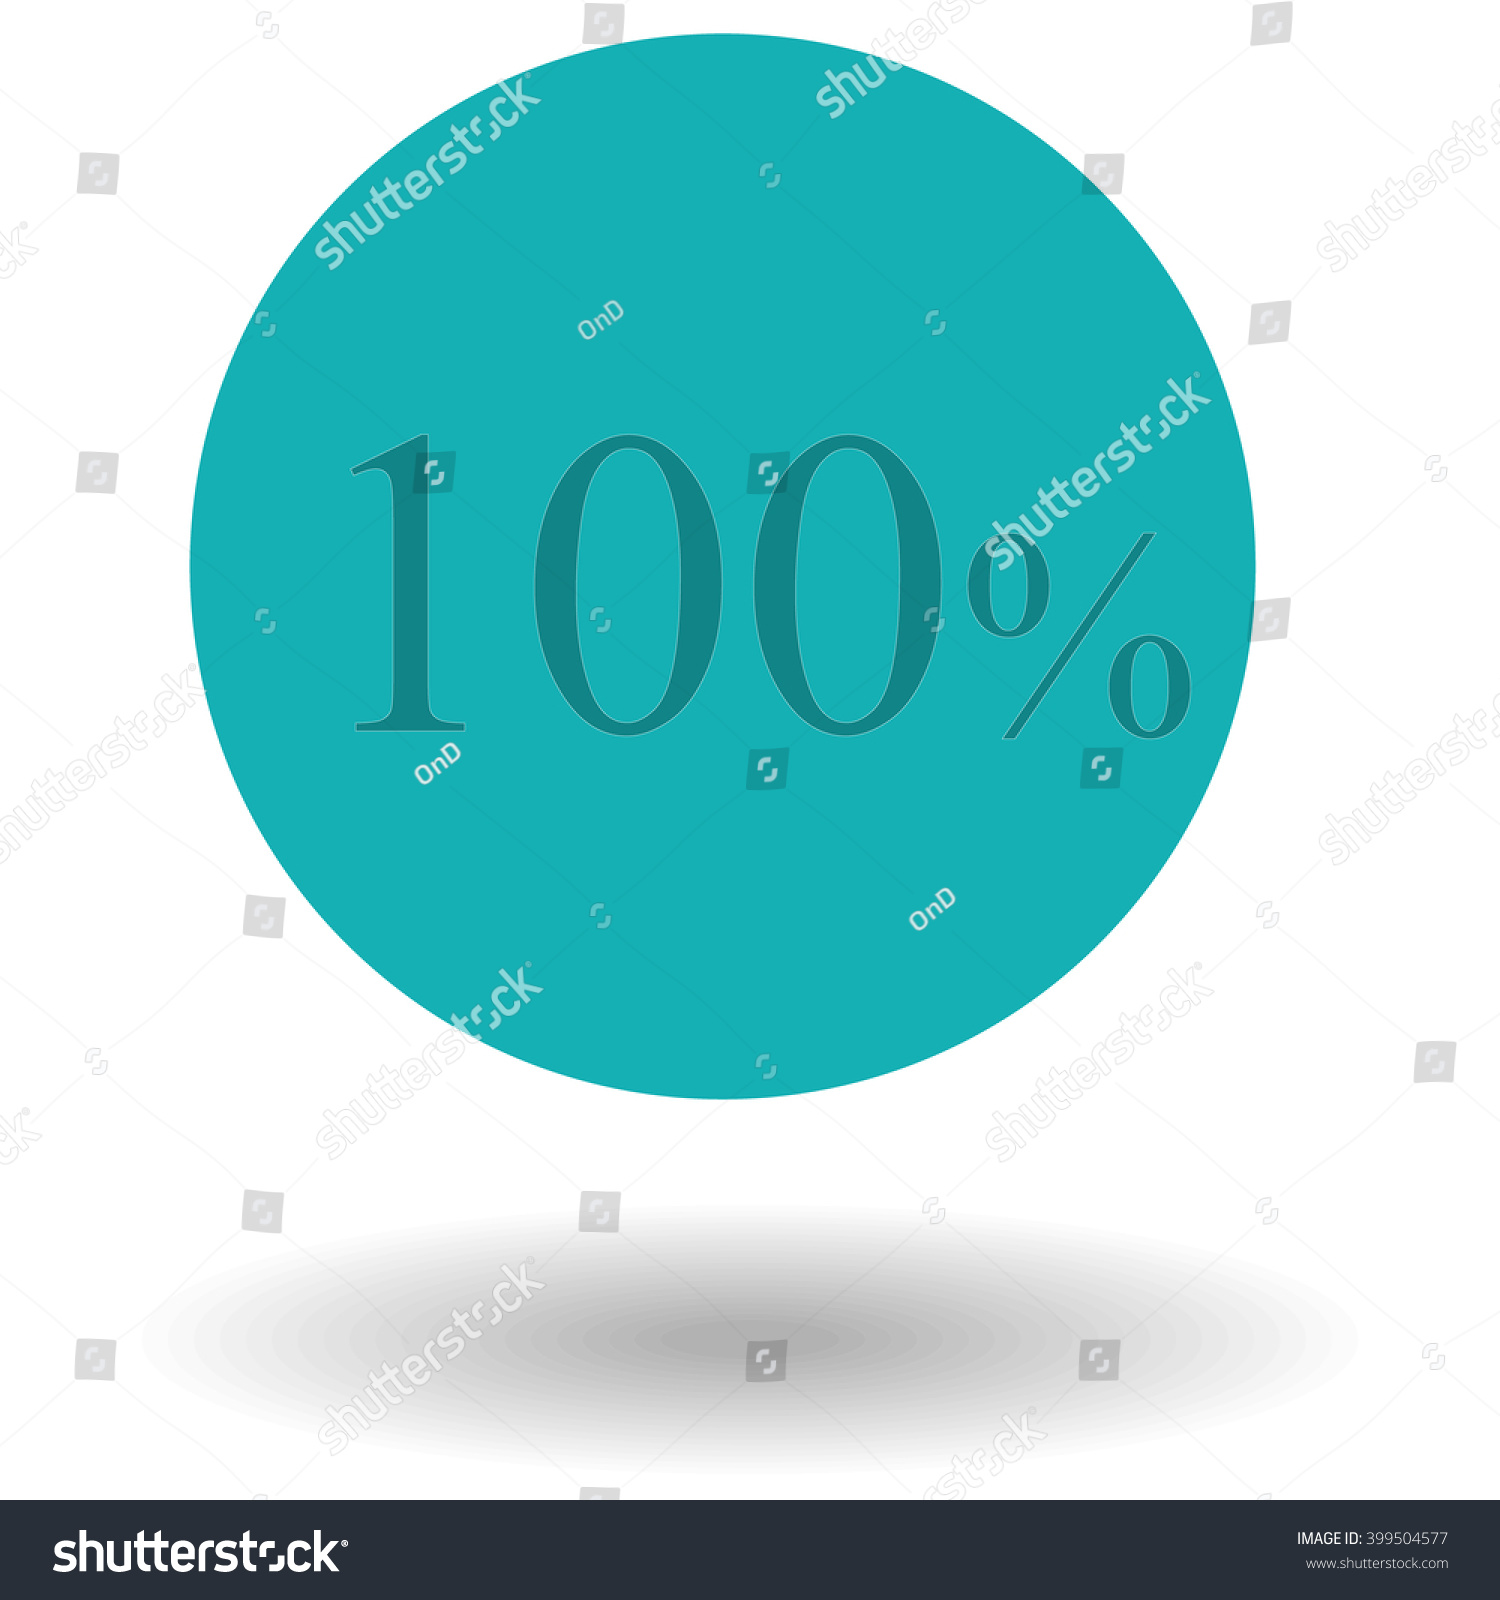 Business colorful graph pie chart circle stock illustration business colorful graph pie chart circle graph 100 azure yellow raster illustration geenschuldenfo Gallery